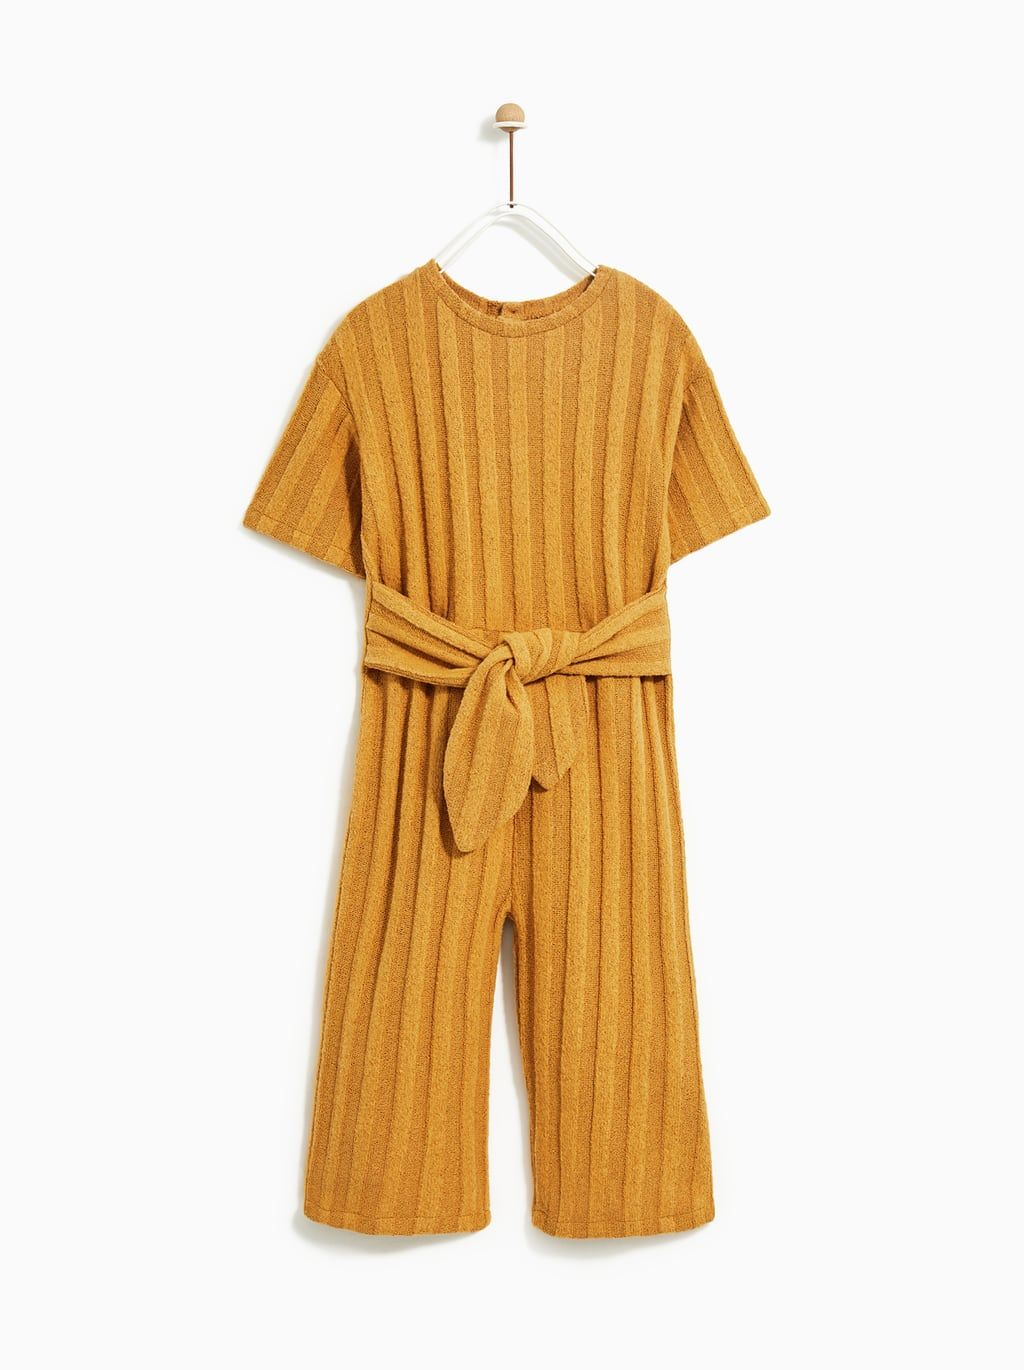 53fc46aac7 Image 1 of RIBBED CULOTTE JUMPSUIT from Zara | Restaurant design ...